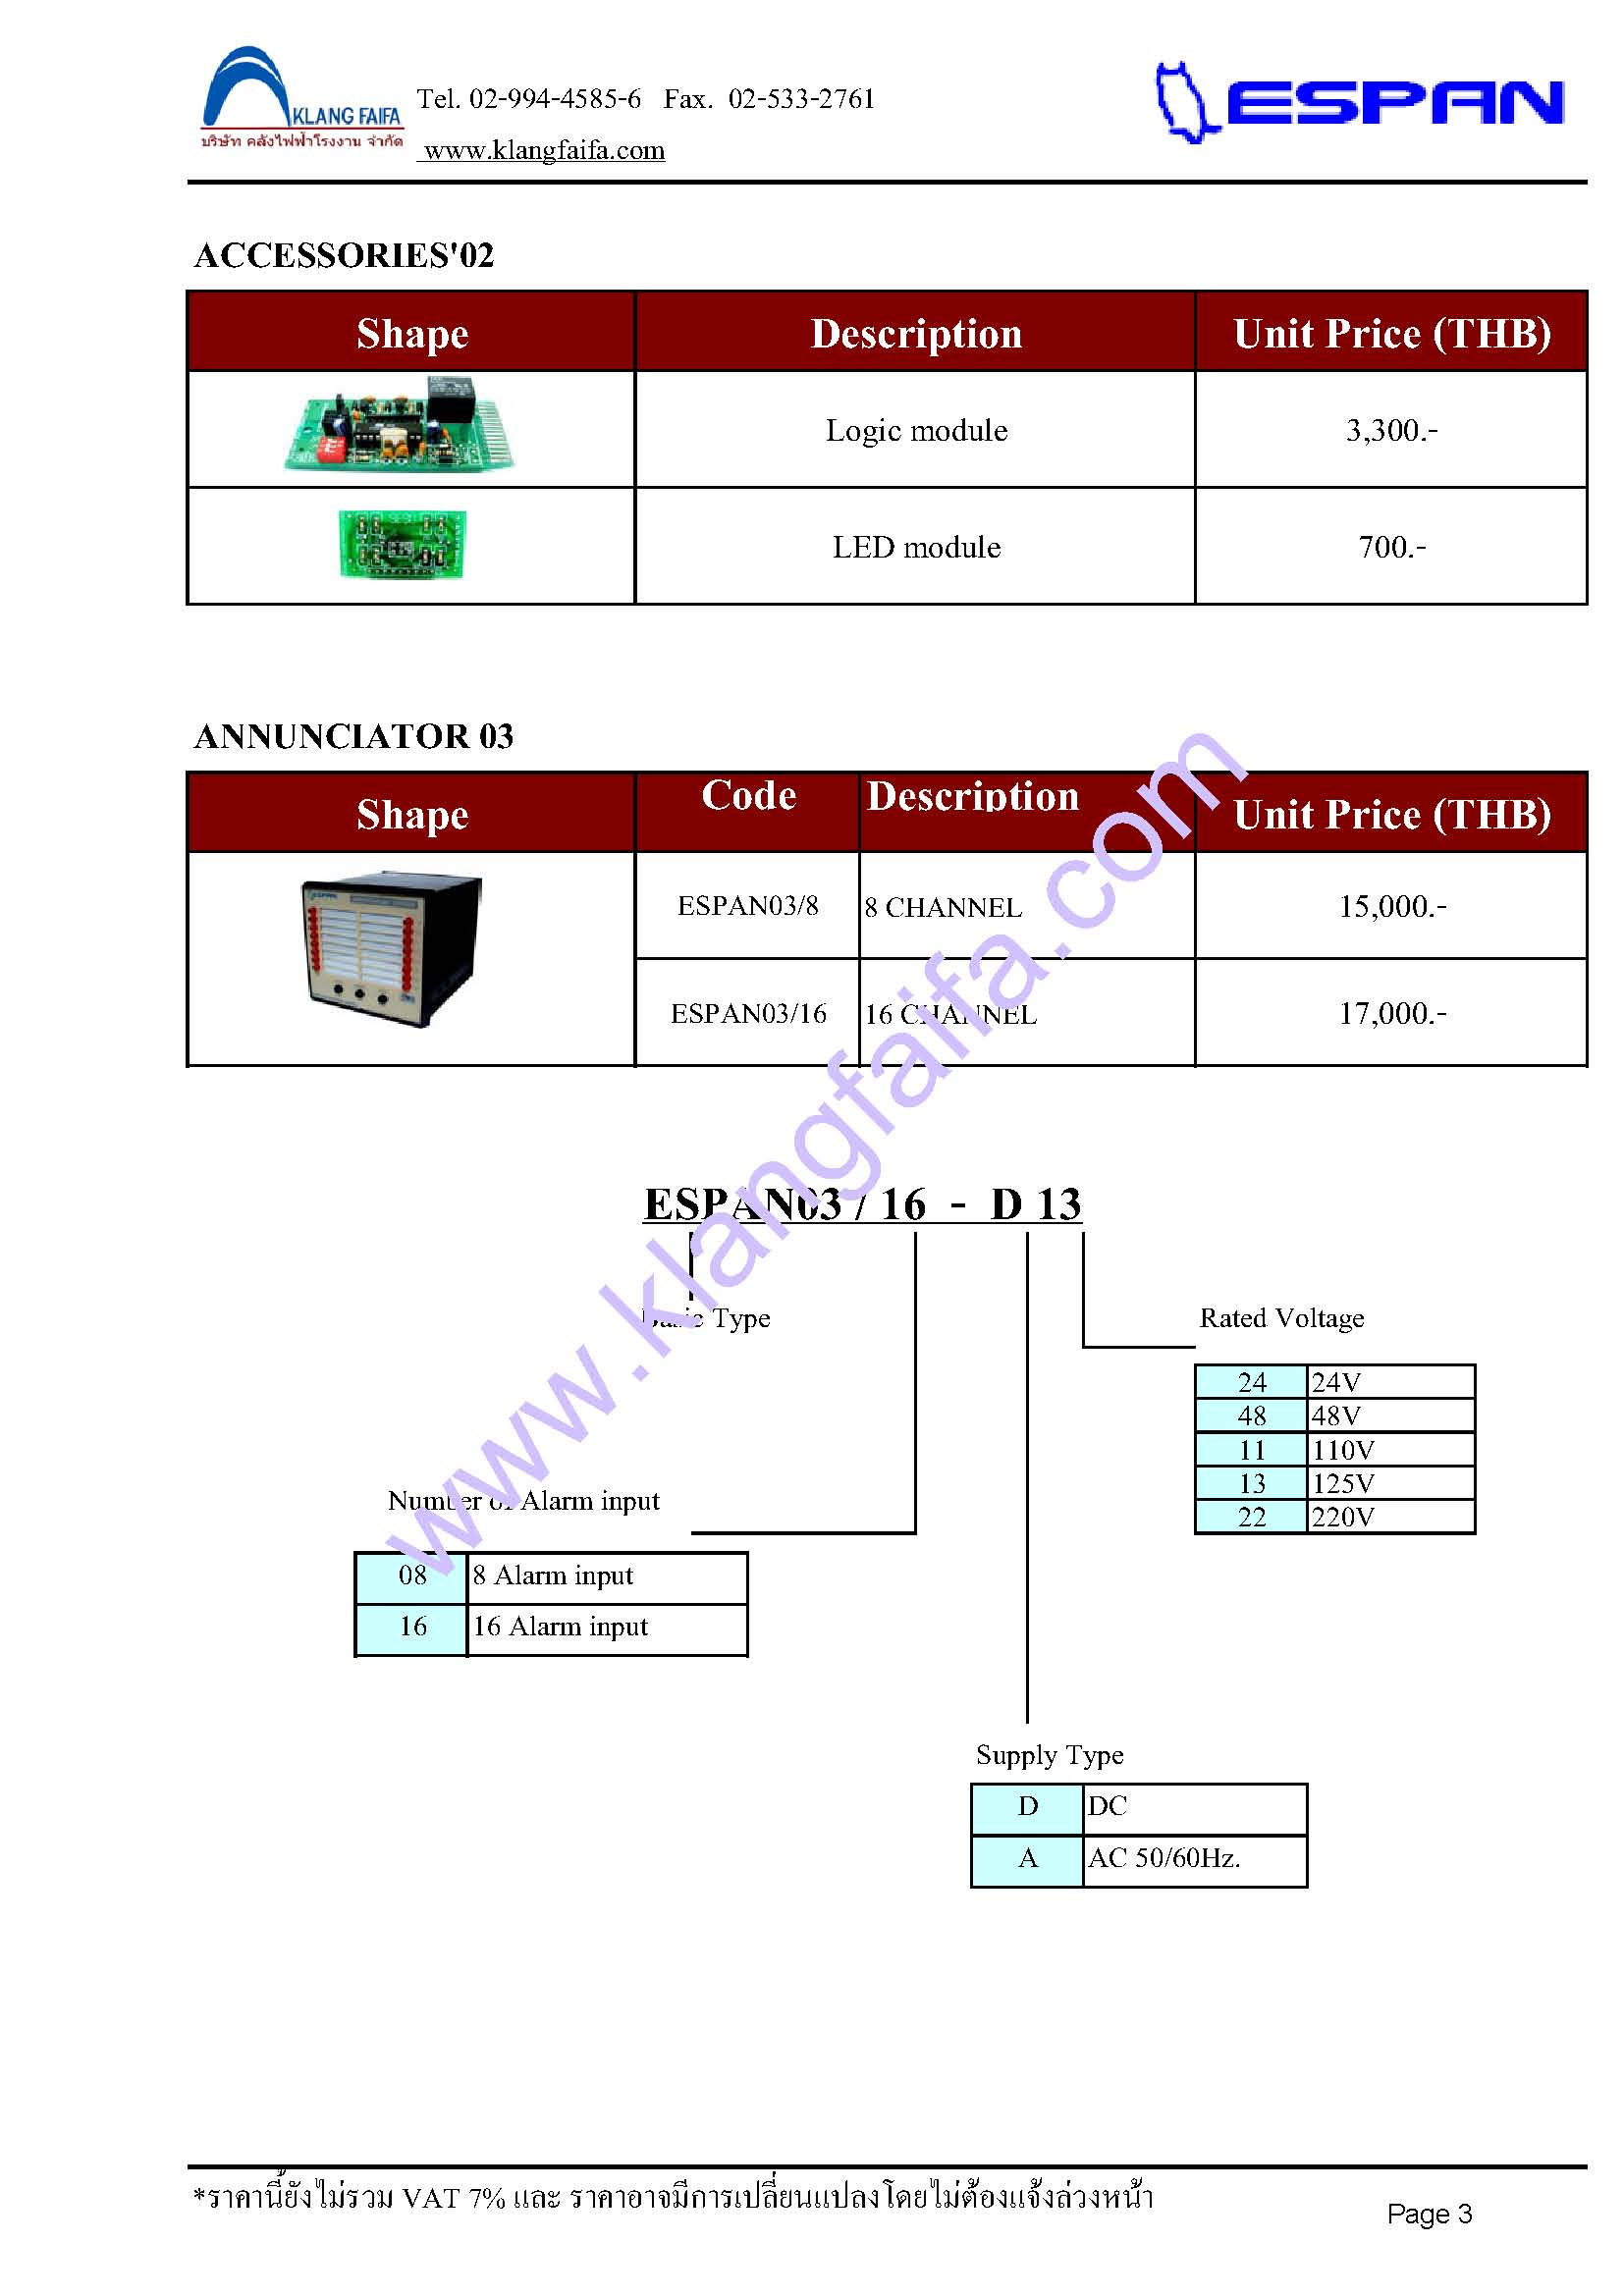 Annunciator01,Master-Module, Display-Module, Vibrating-horn, Annunciator02,Annunciator03,Power-Buzzer, DC-Voltage, Fast-Trip-Relay,Latching-Relay